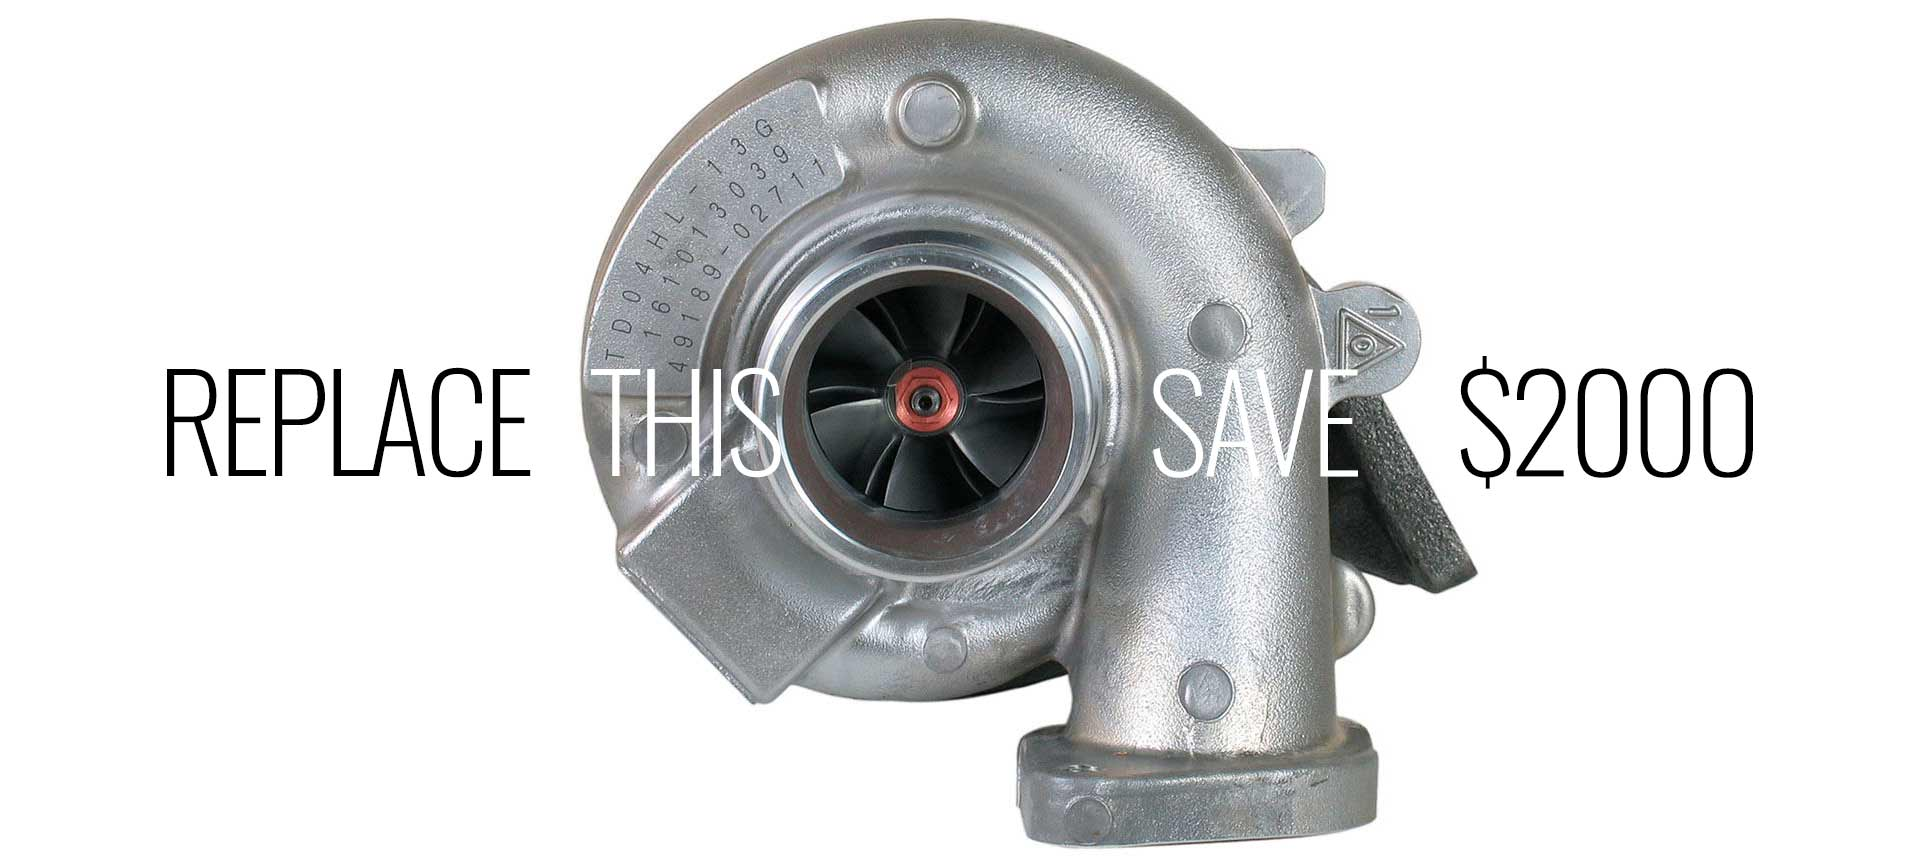 Replace Turbo Diy -